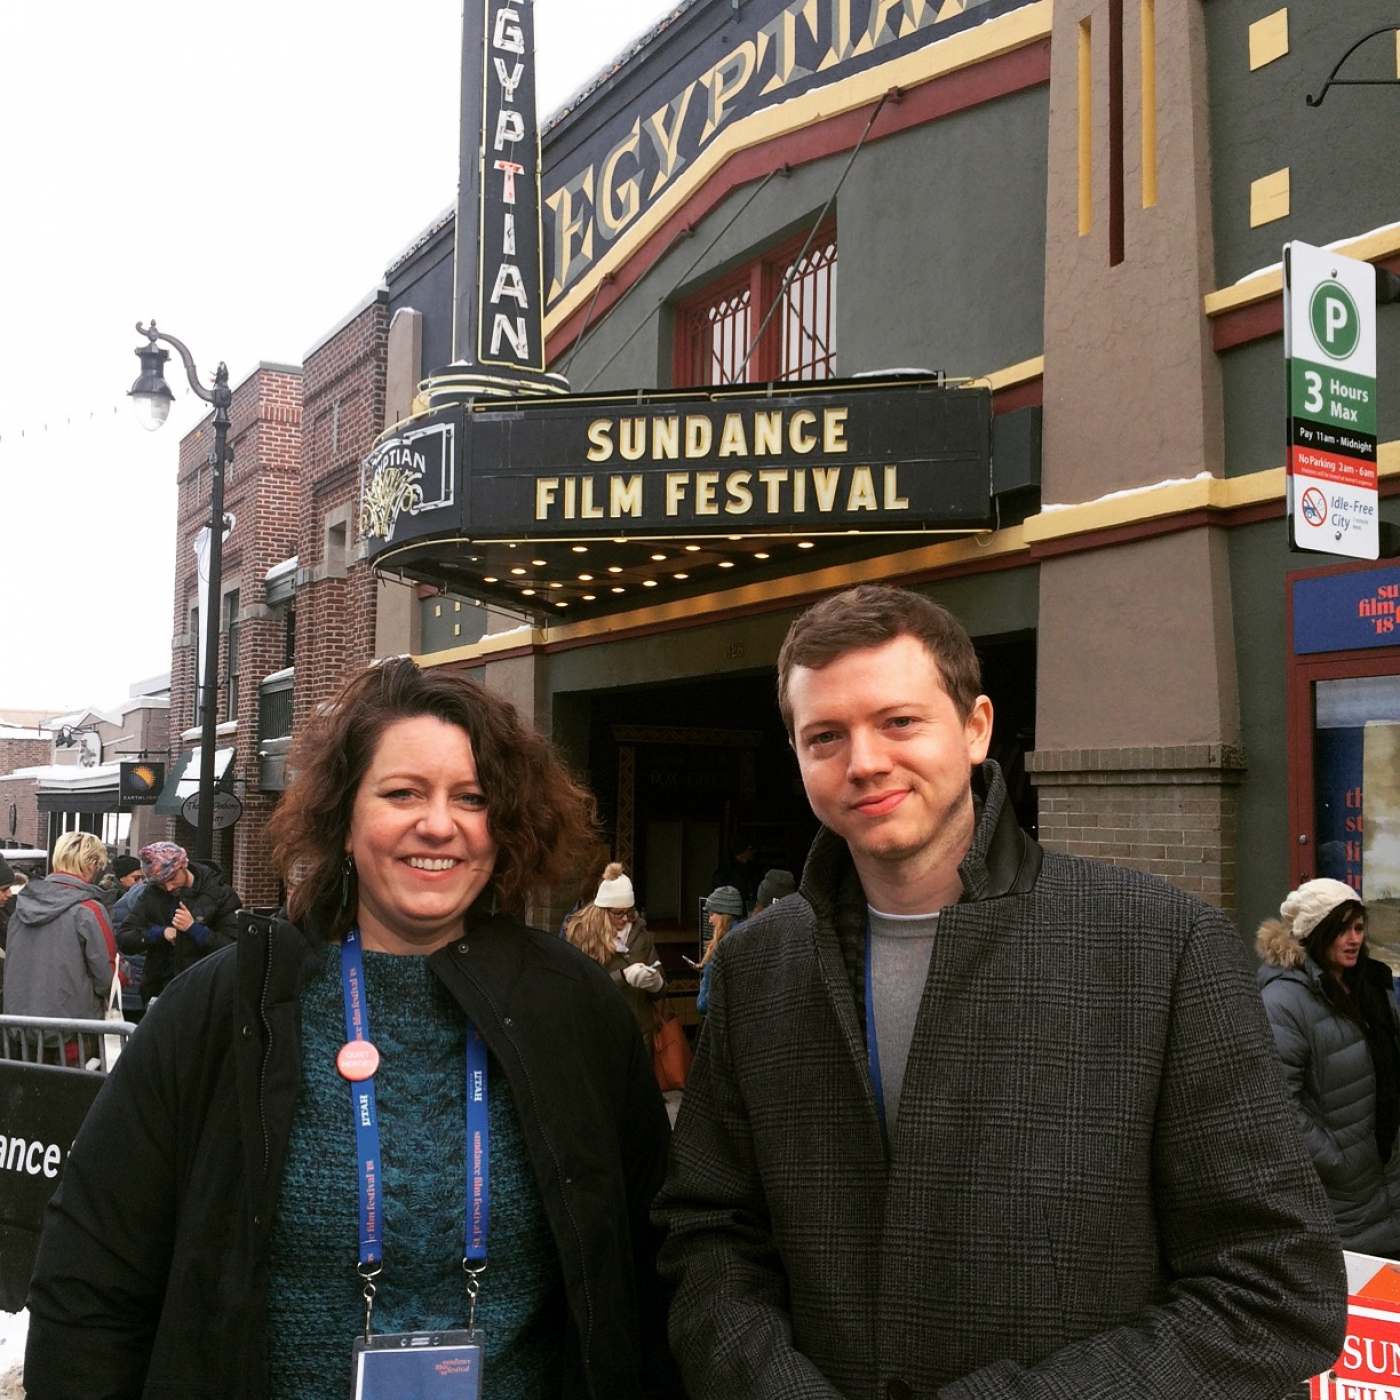 Amanda Stoddard and Jared Ruga at Sundance Film Festival